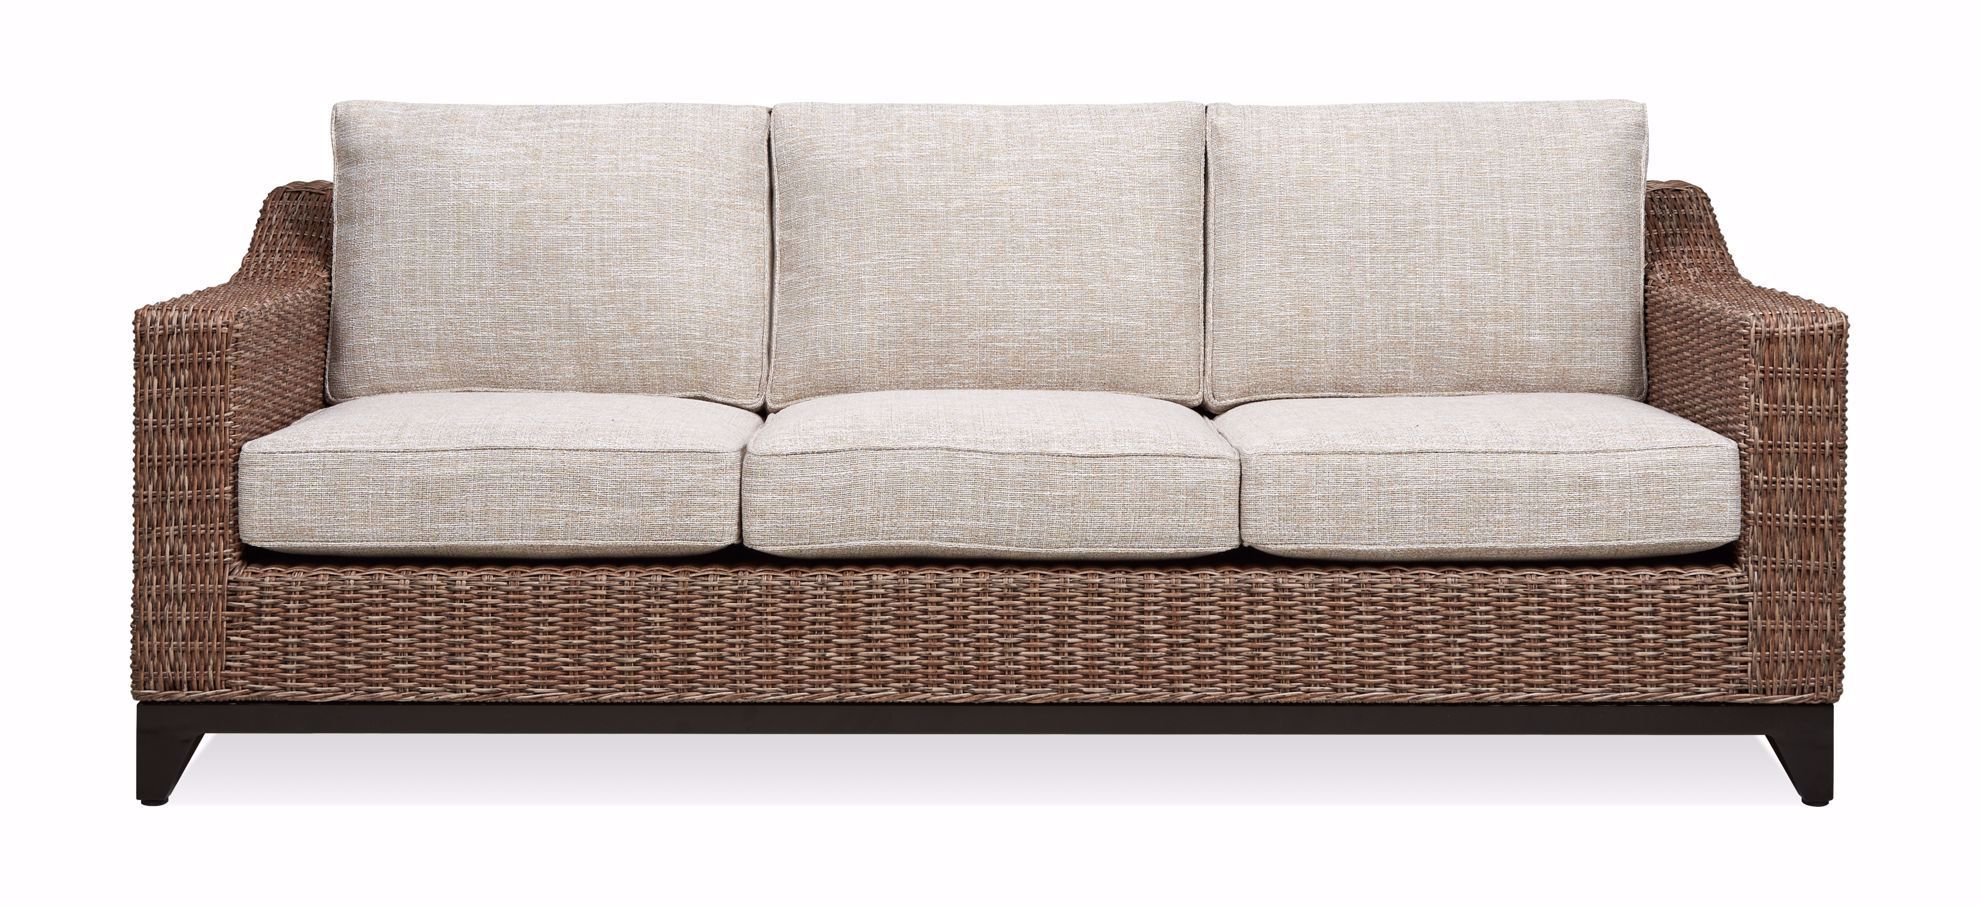 Picture of Manteo Patio Cushion Sofa